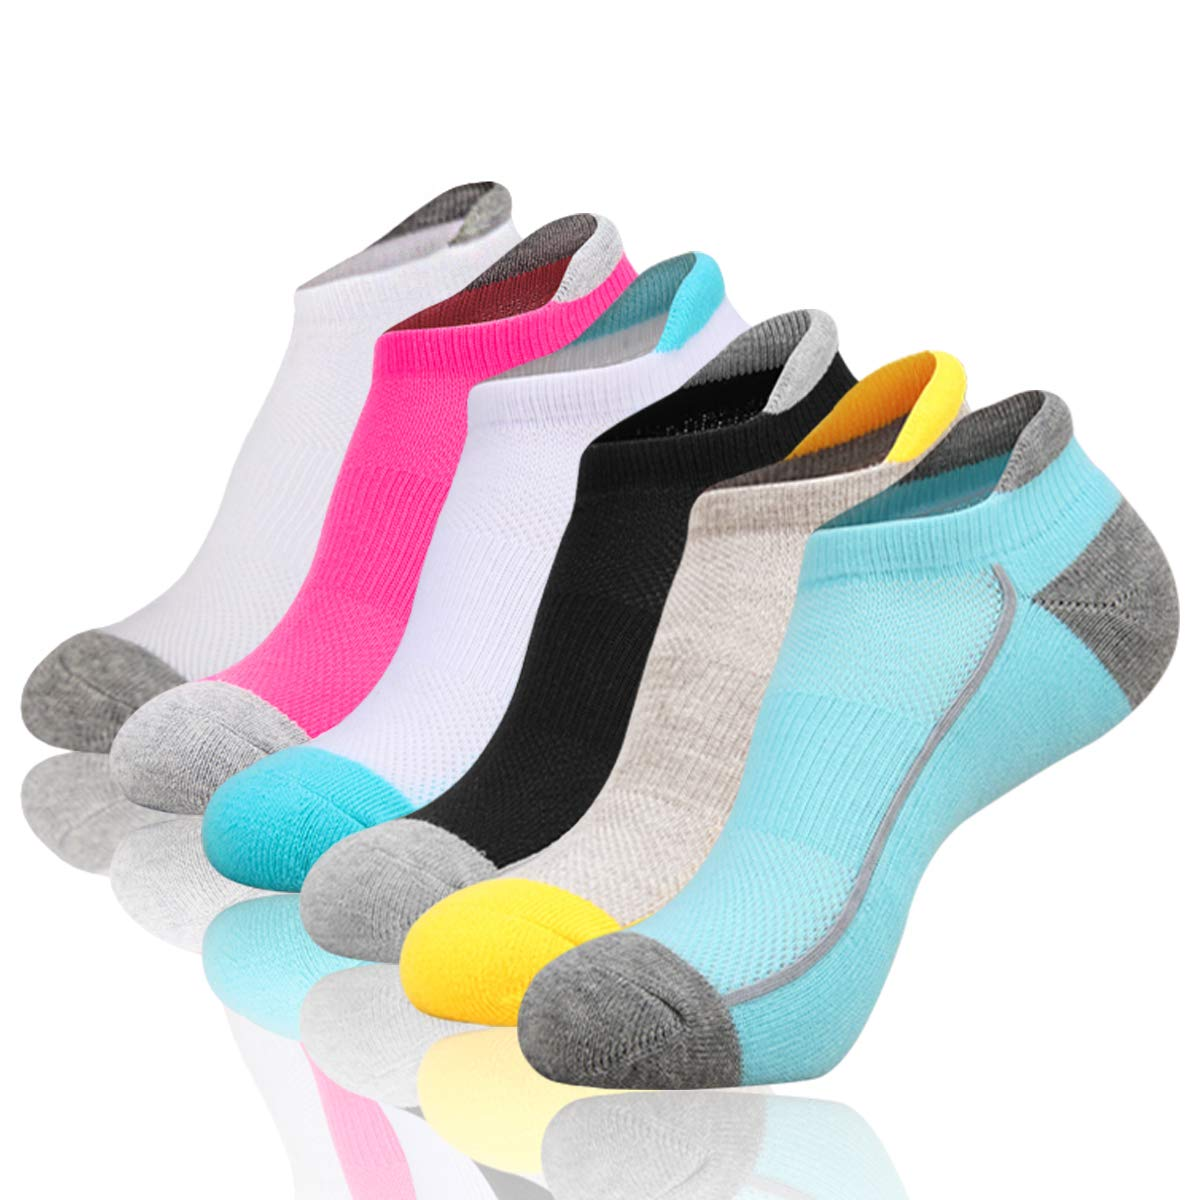 Heatuff Womens Low Cut Ankle Athletic Socks Cushioned Running No Show Breathable Tab Sock 6 Pack by Heatuff